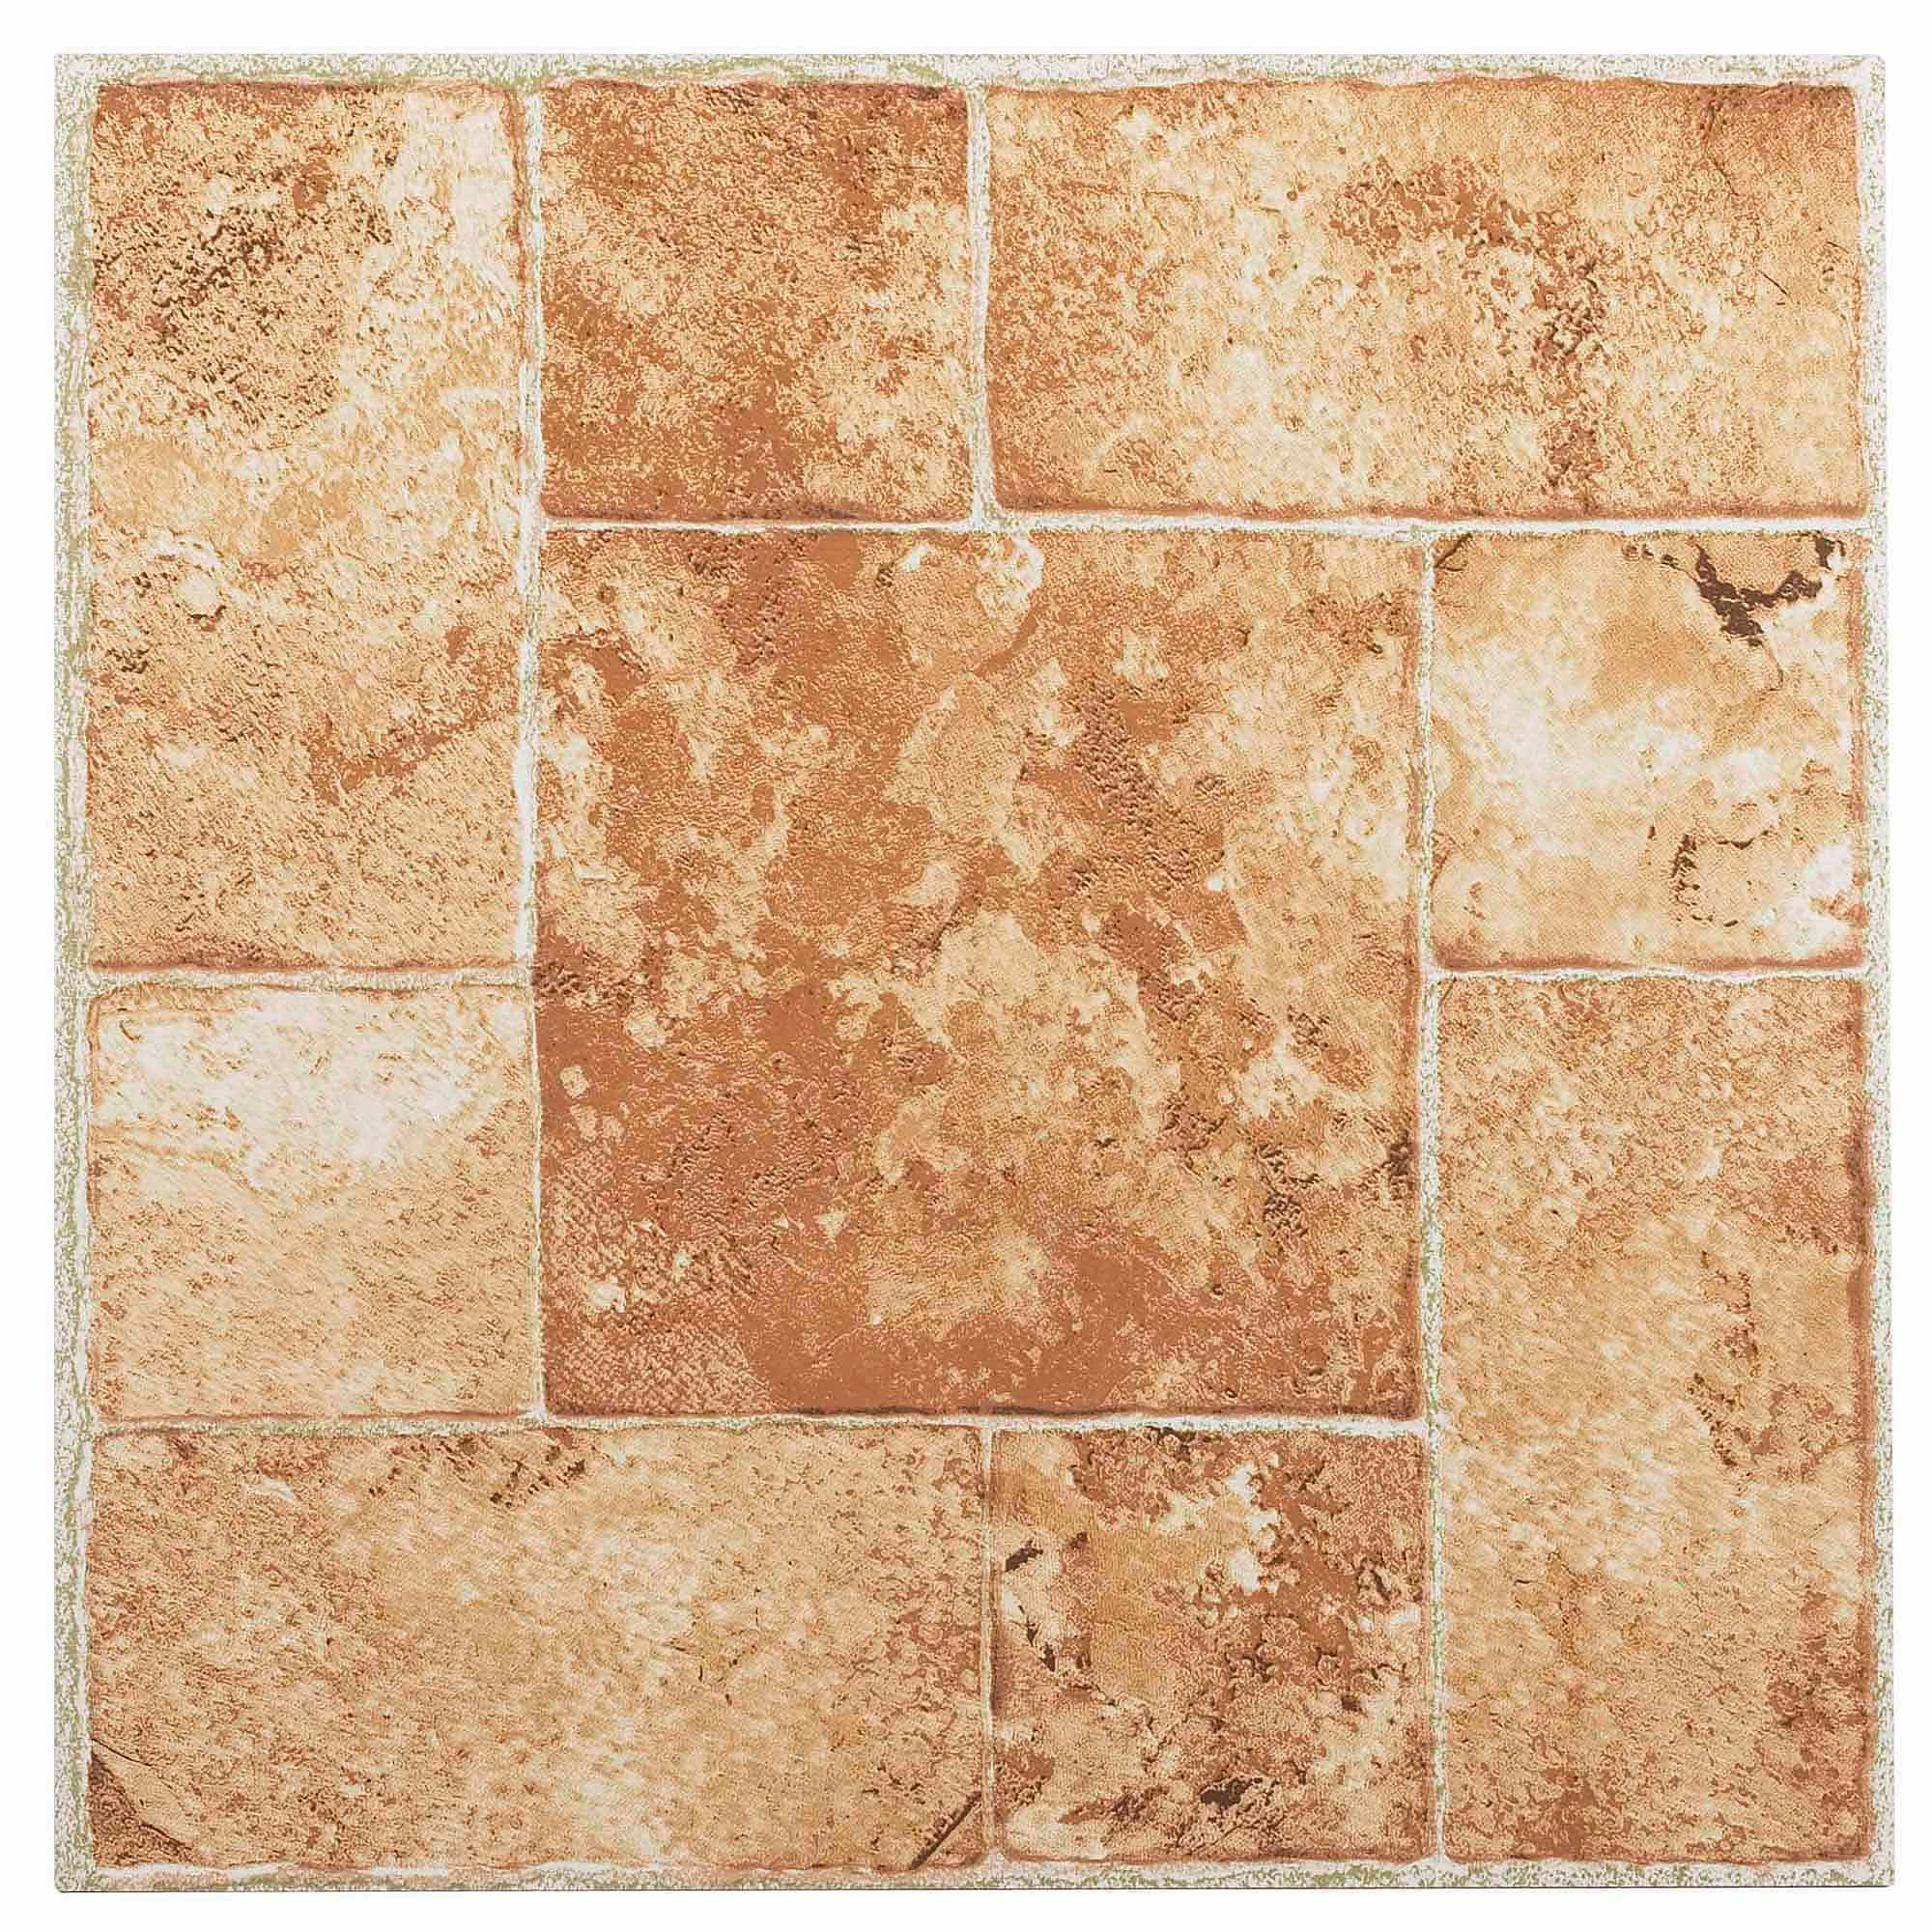 Nexus beige terracotta 12x12 self adhesive vinyl floor tile 20 nexus beige terracotta 12x12 self adhesive vinyl floor tile 20 tiles20 sqft walmart dailygadgetfo Images